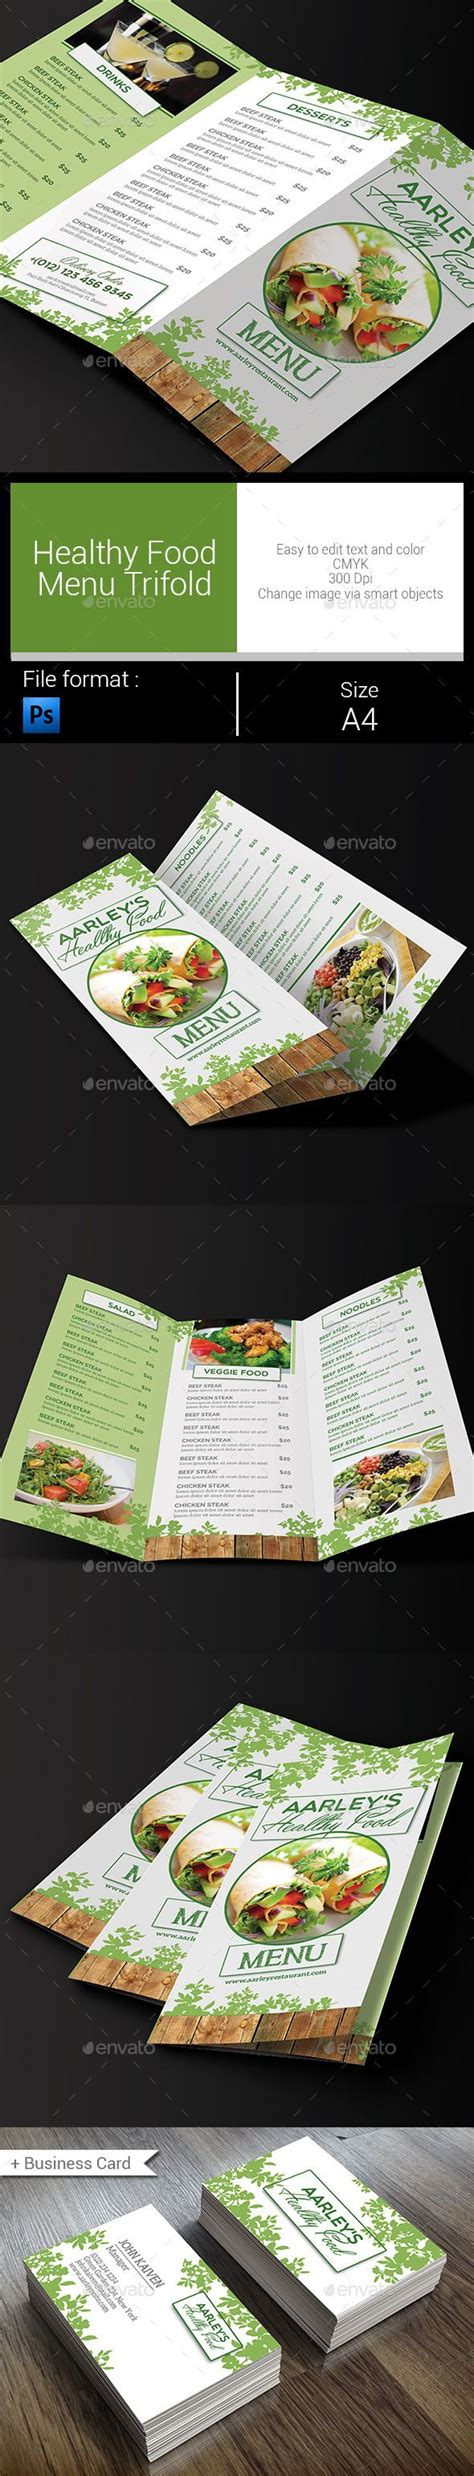 Best menus of virginia beach. well done. the colors unite the menu and the information ...